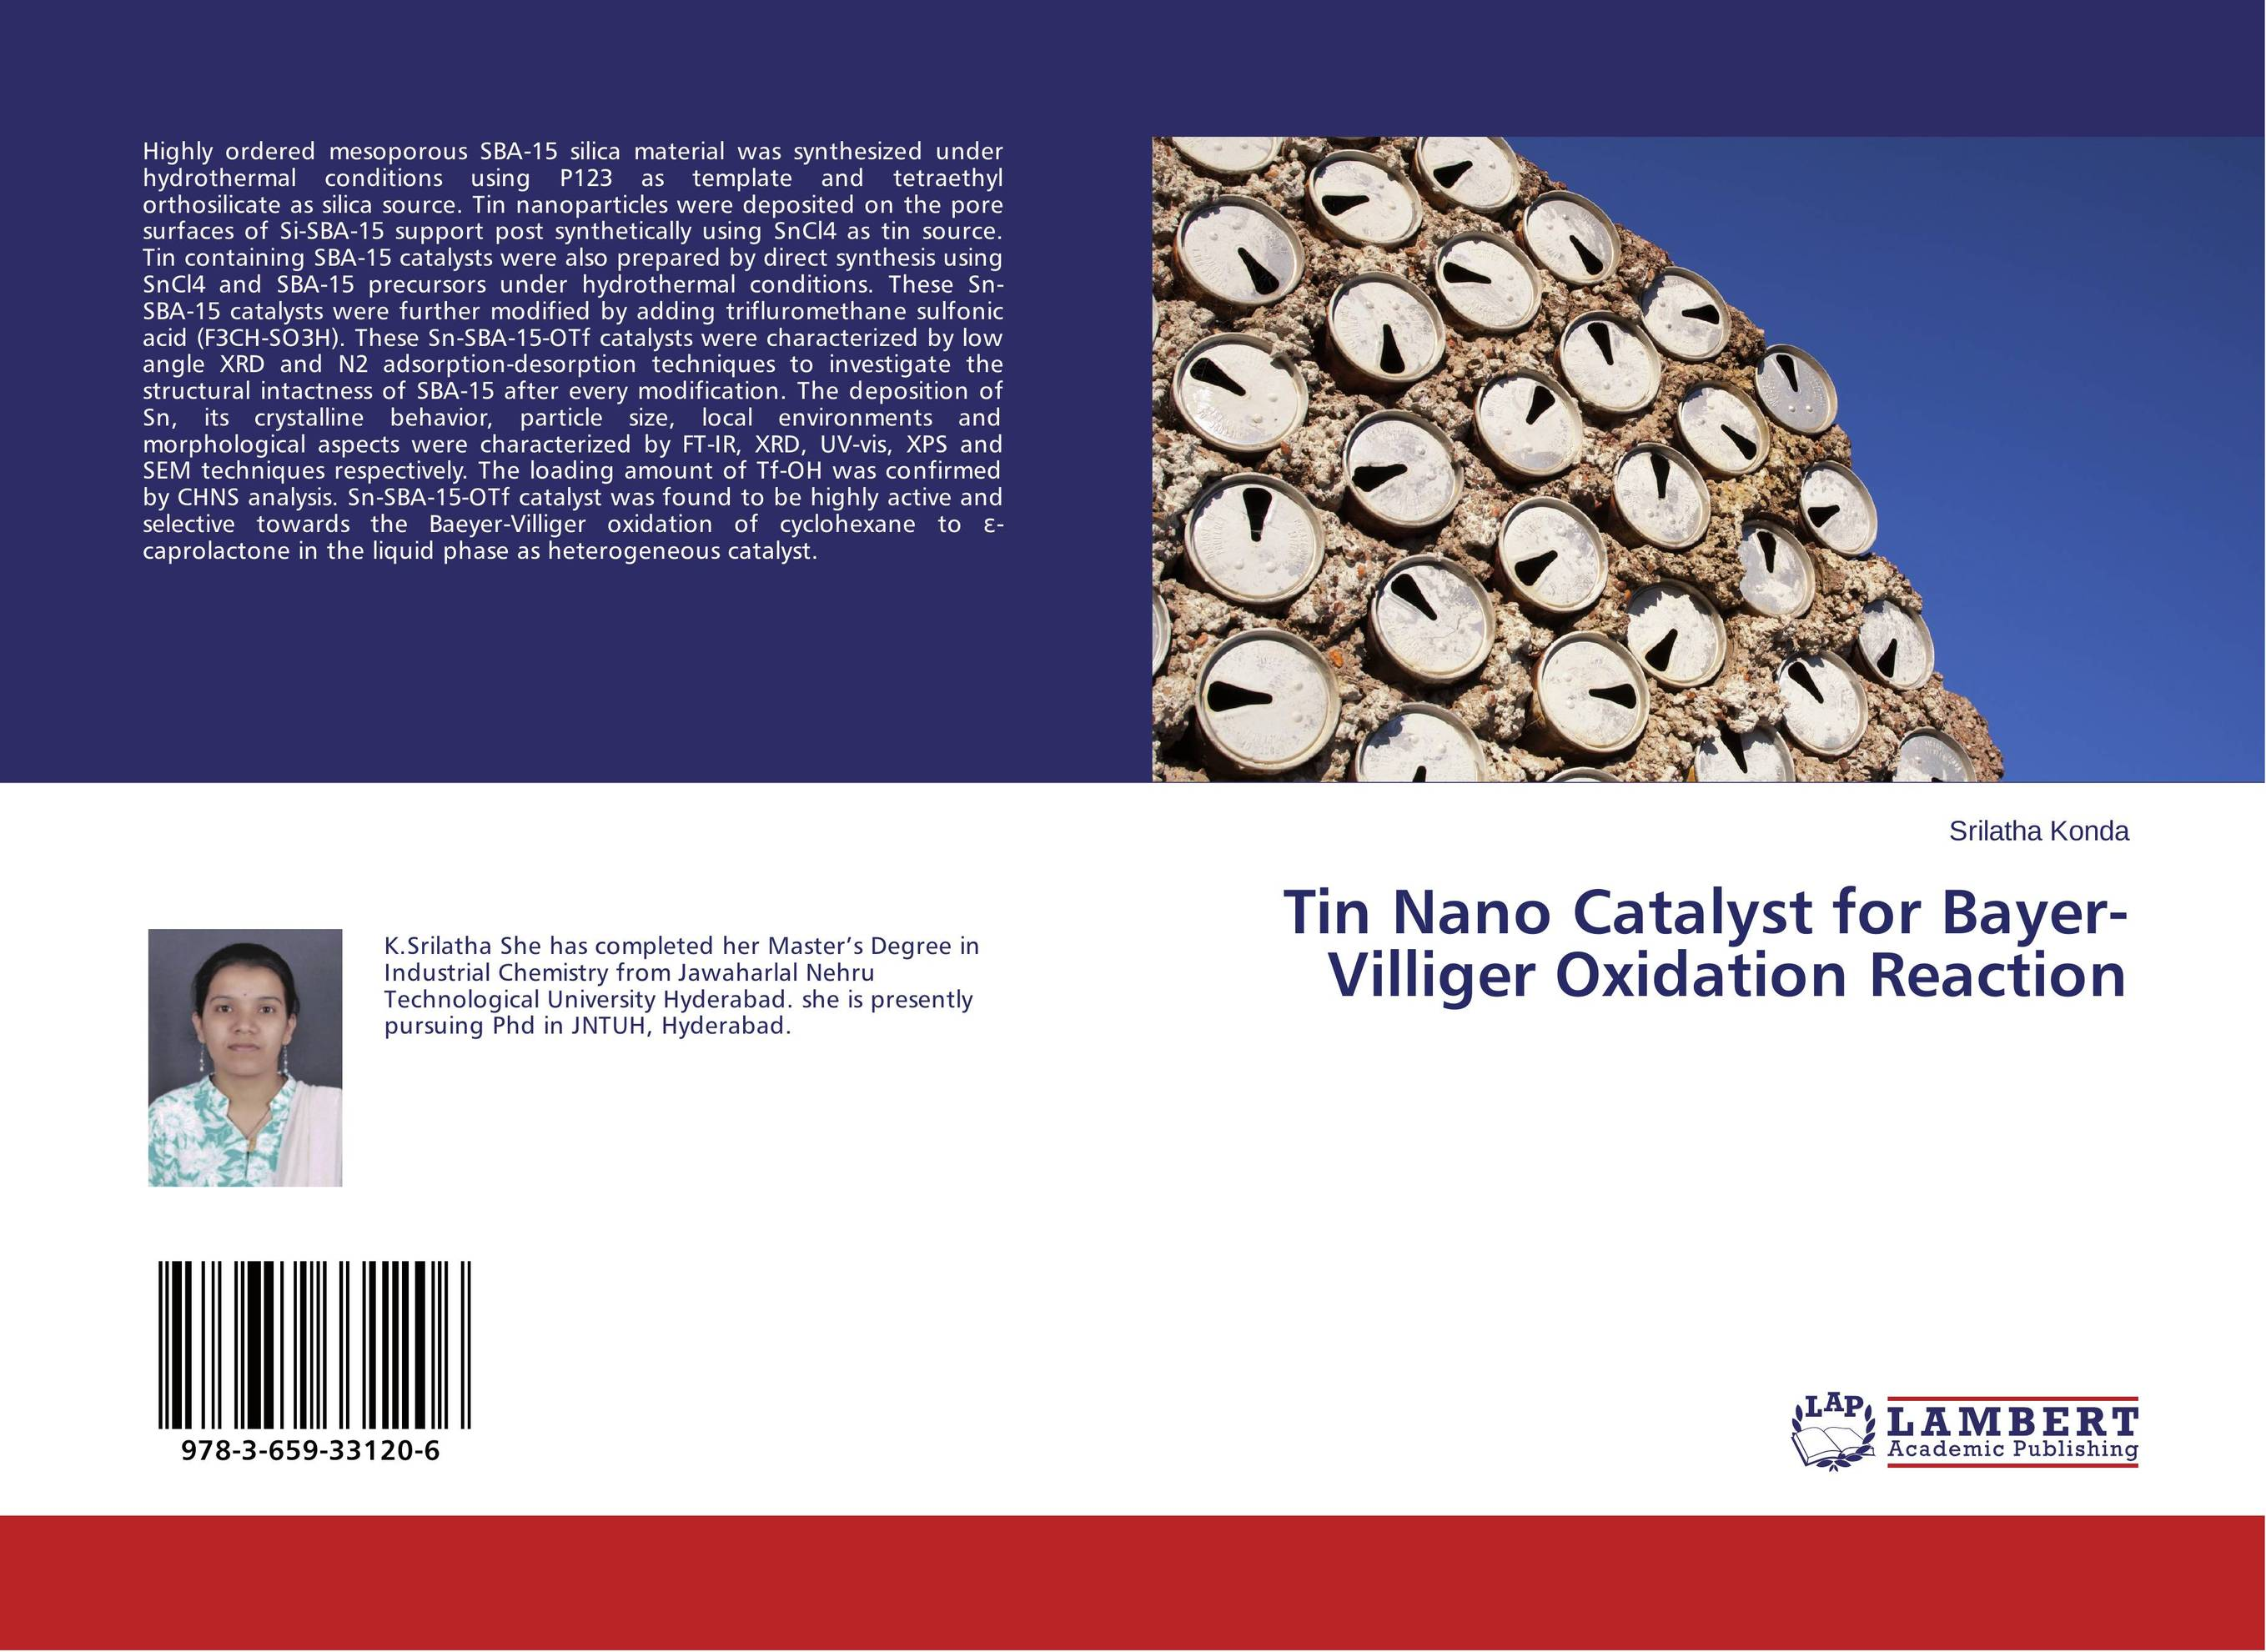 Tin Nano Catalyst for Bayer-Villiger Oxidation Reaction hydrothermal autoclave reactor with teflon chamber hydrothermal synthesis 250ml